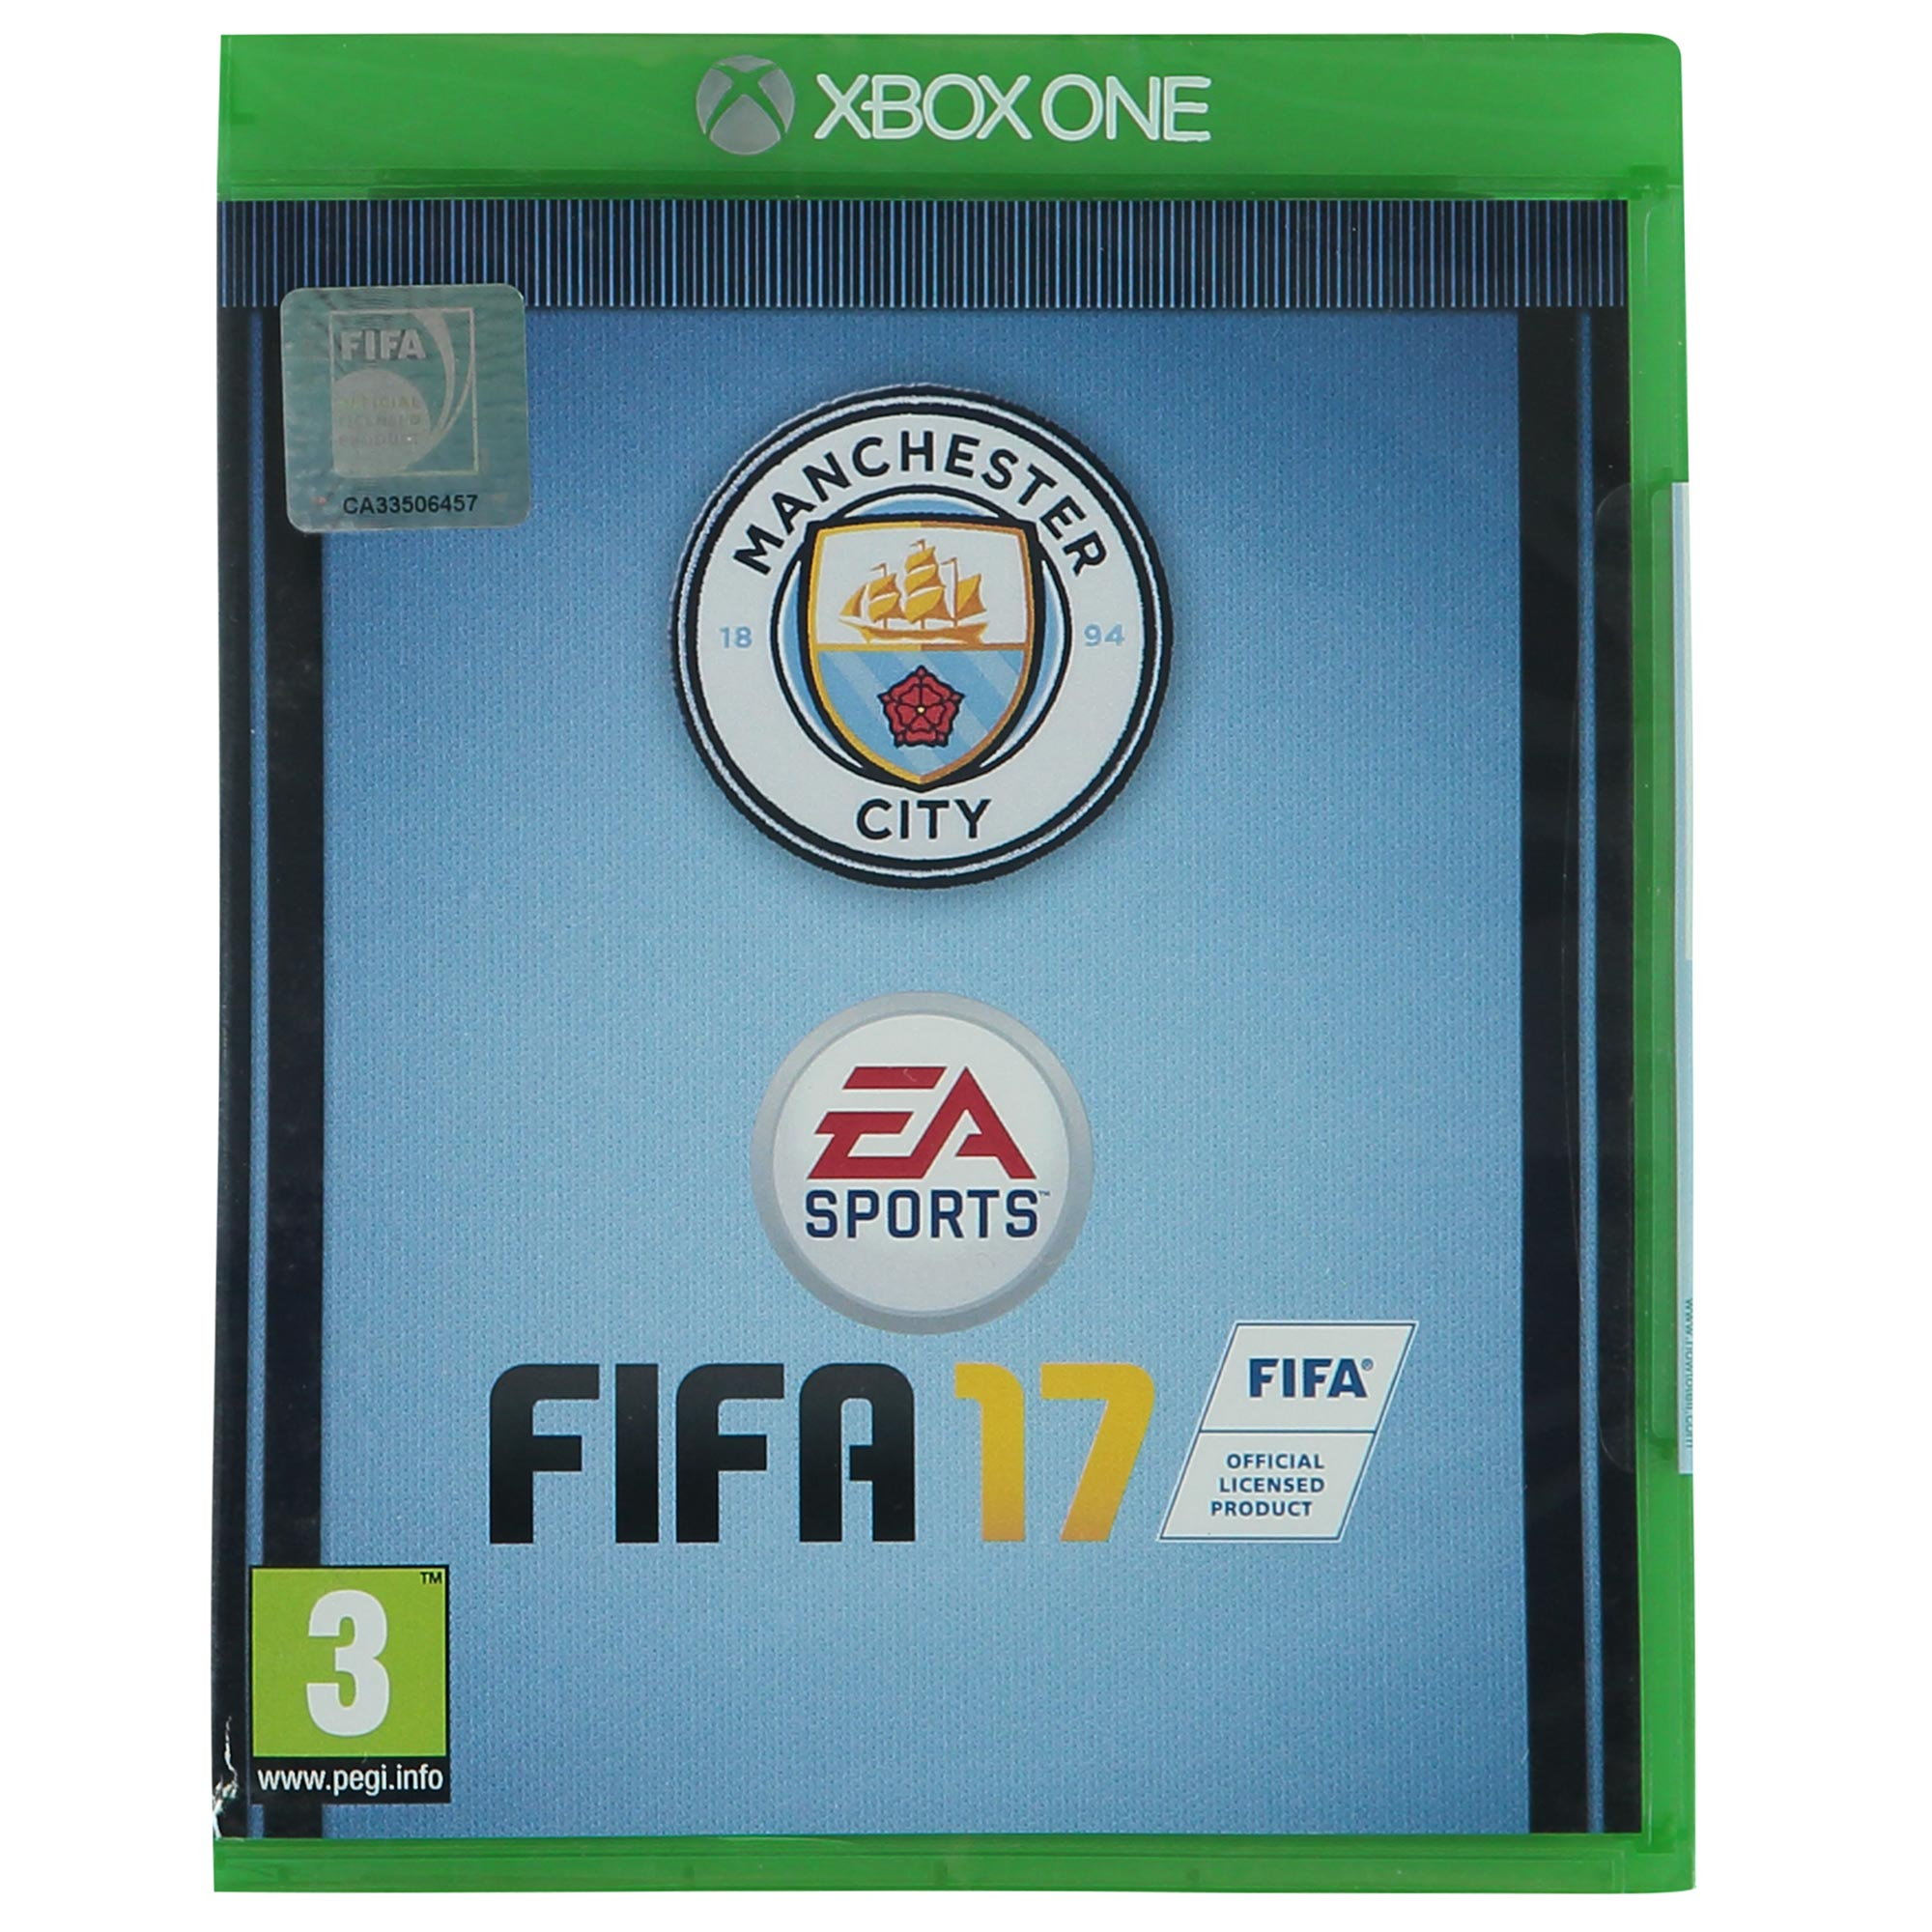 Manchester City FIFA 17 - Club Cover - Xbox One Game